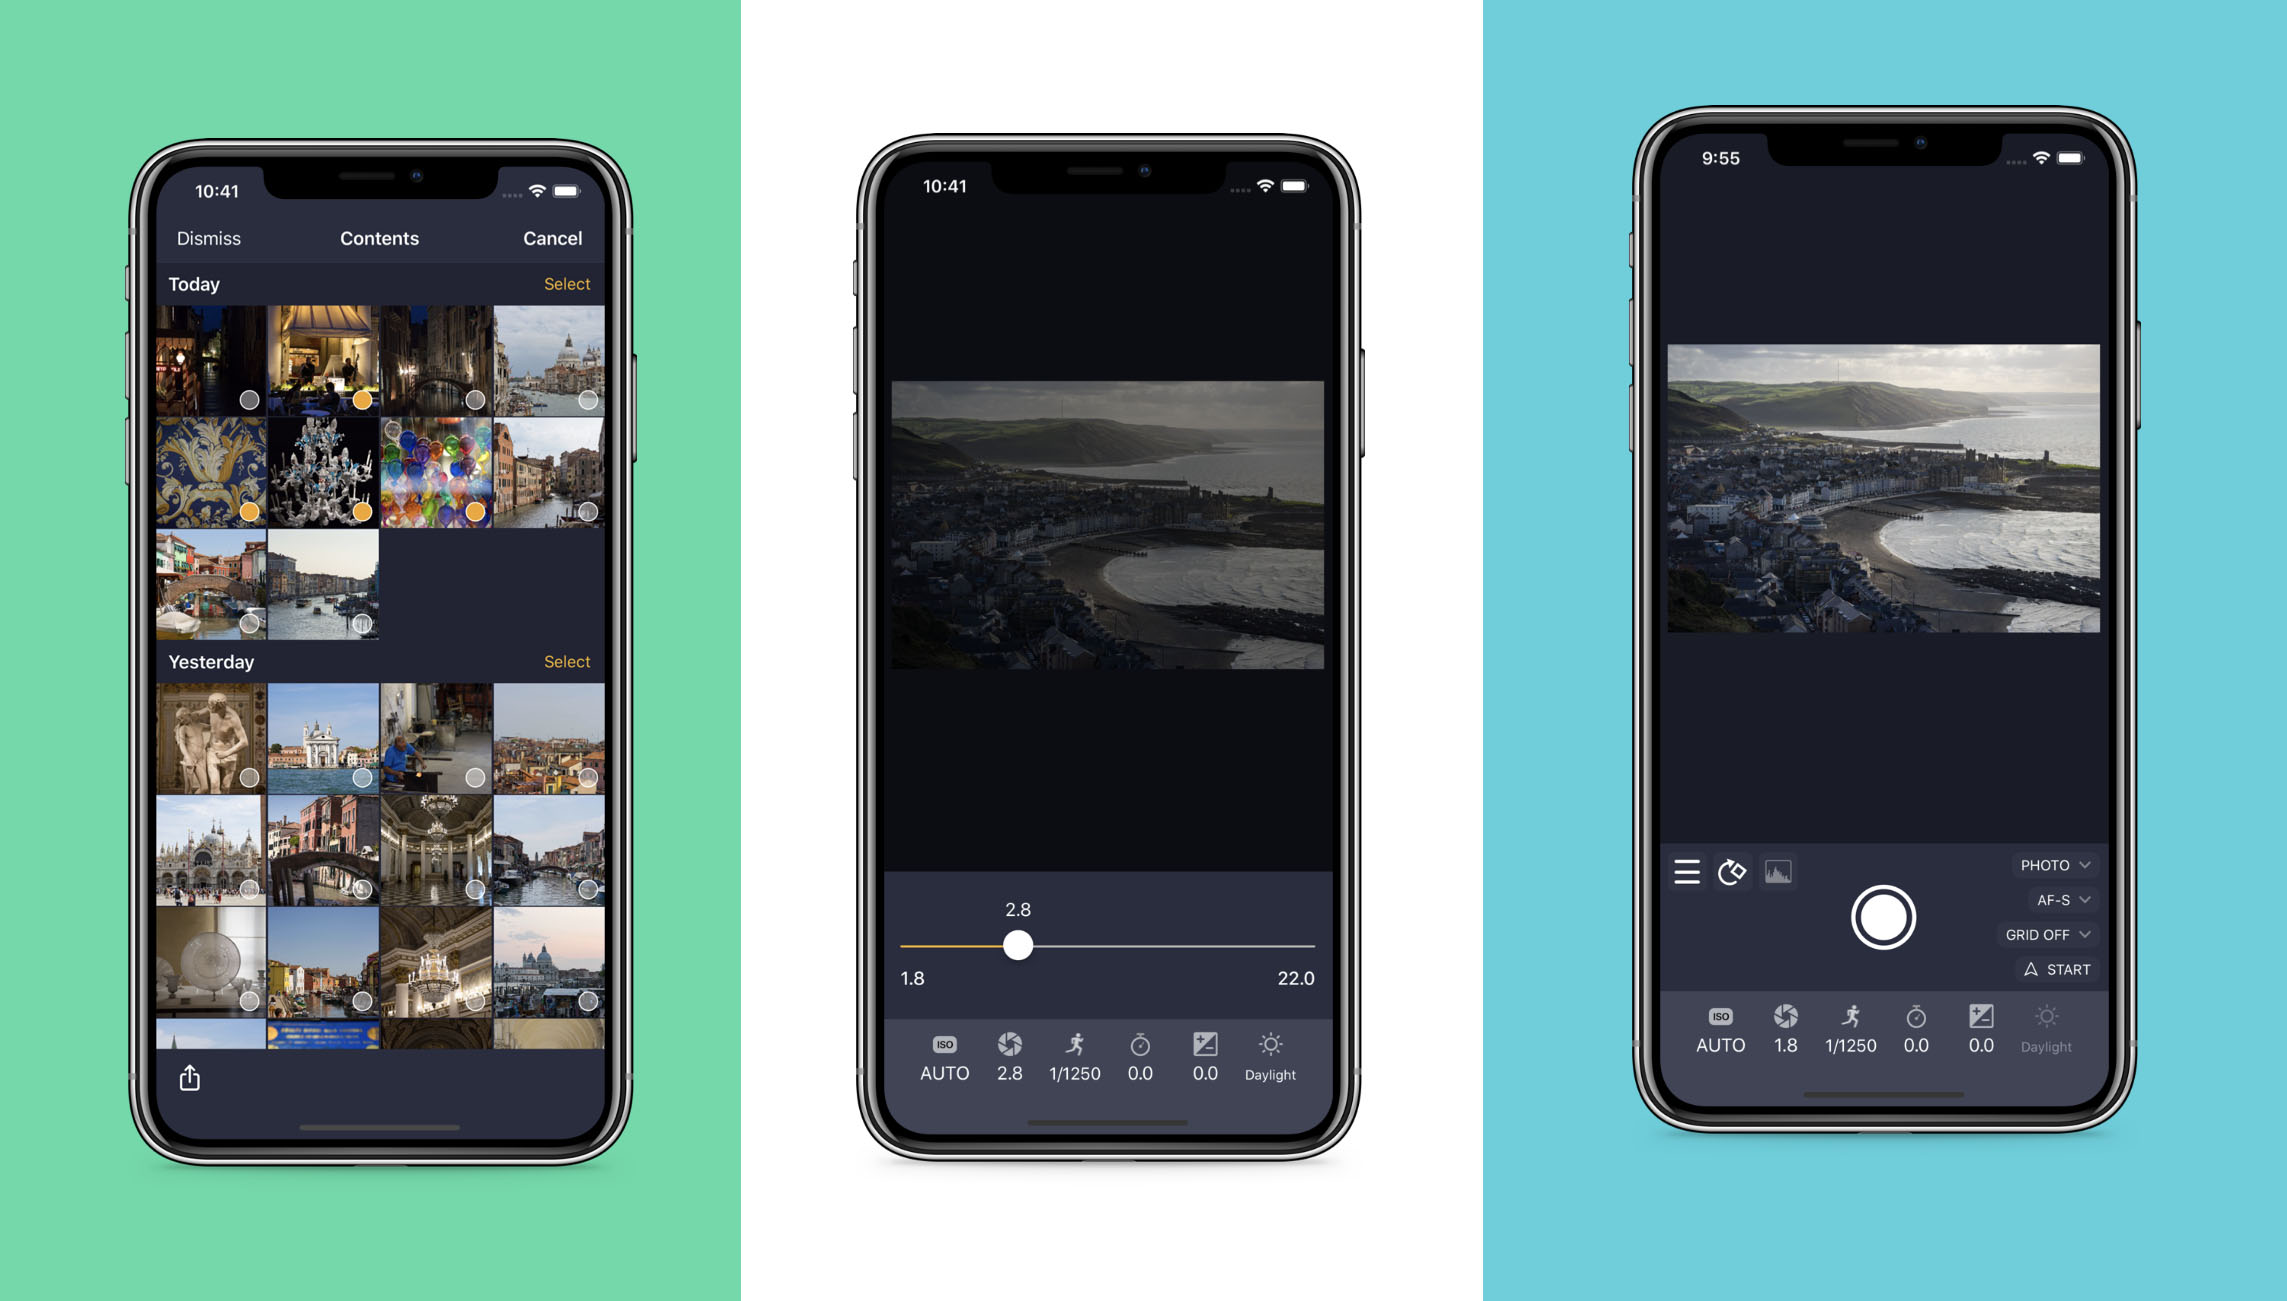 Third Party Ios Sony Remote Camera App Camrote Adds New Zoom Time Lapse Capabilities Digital Photography Review